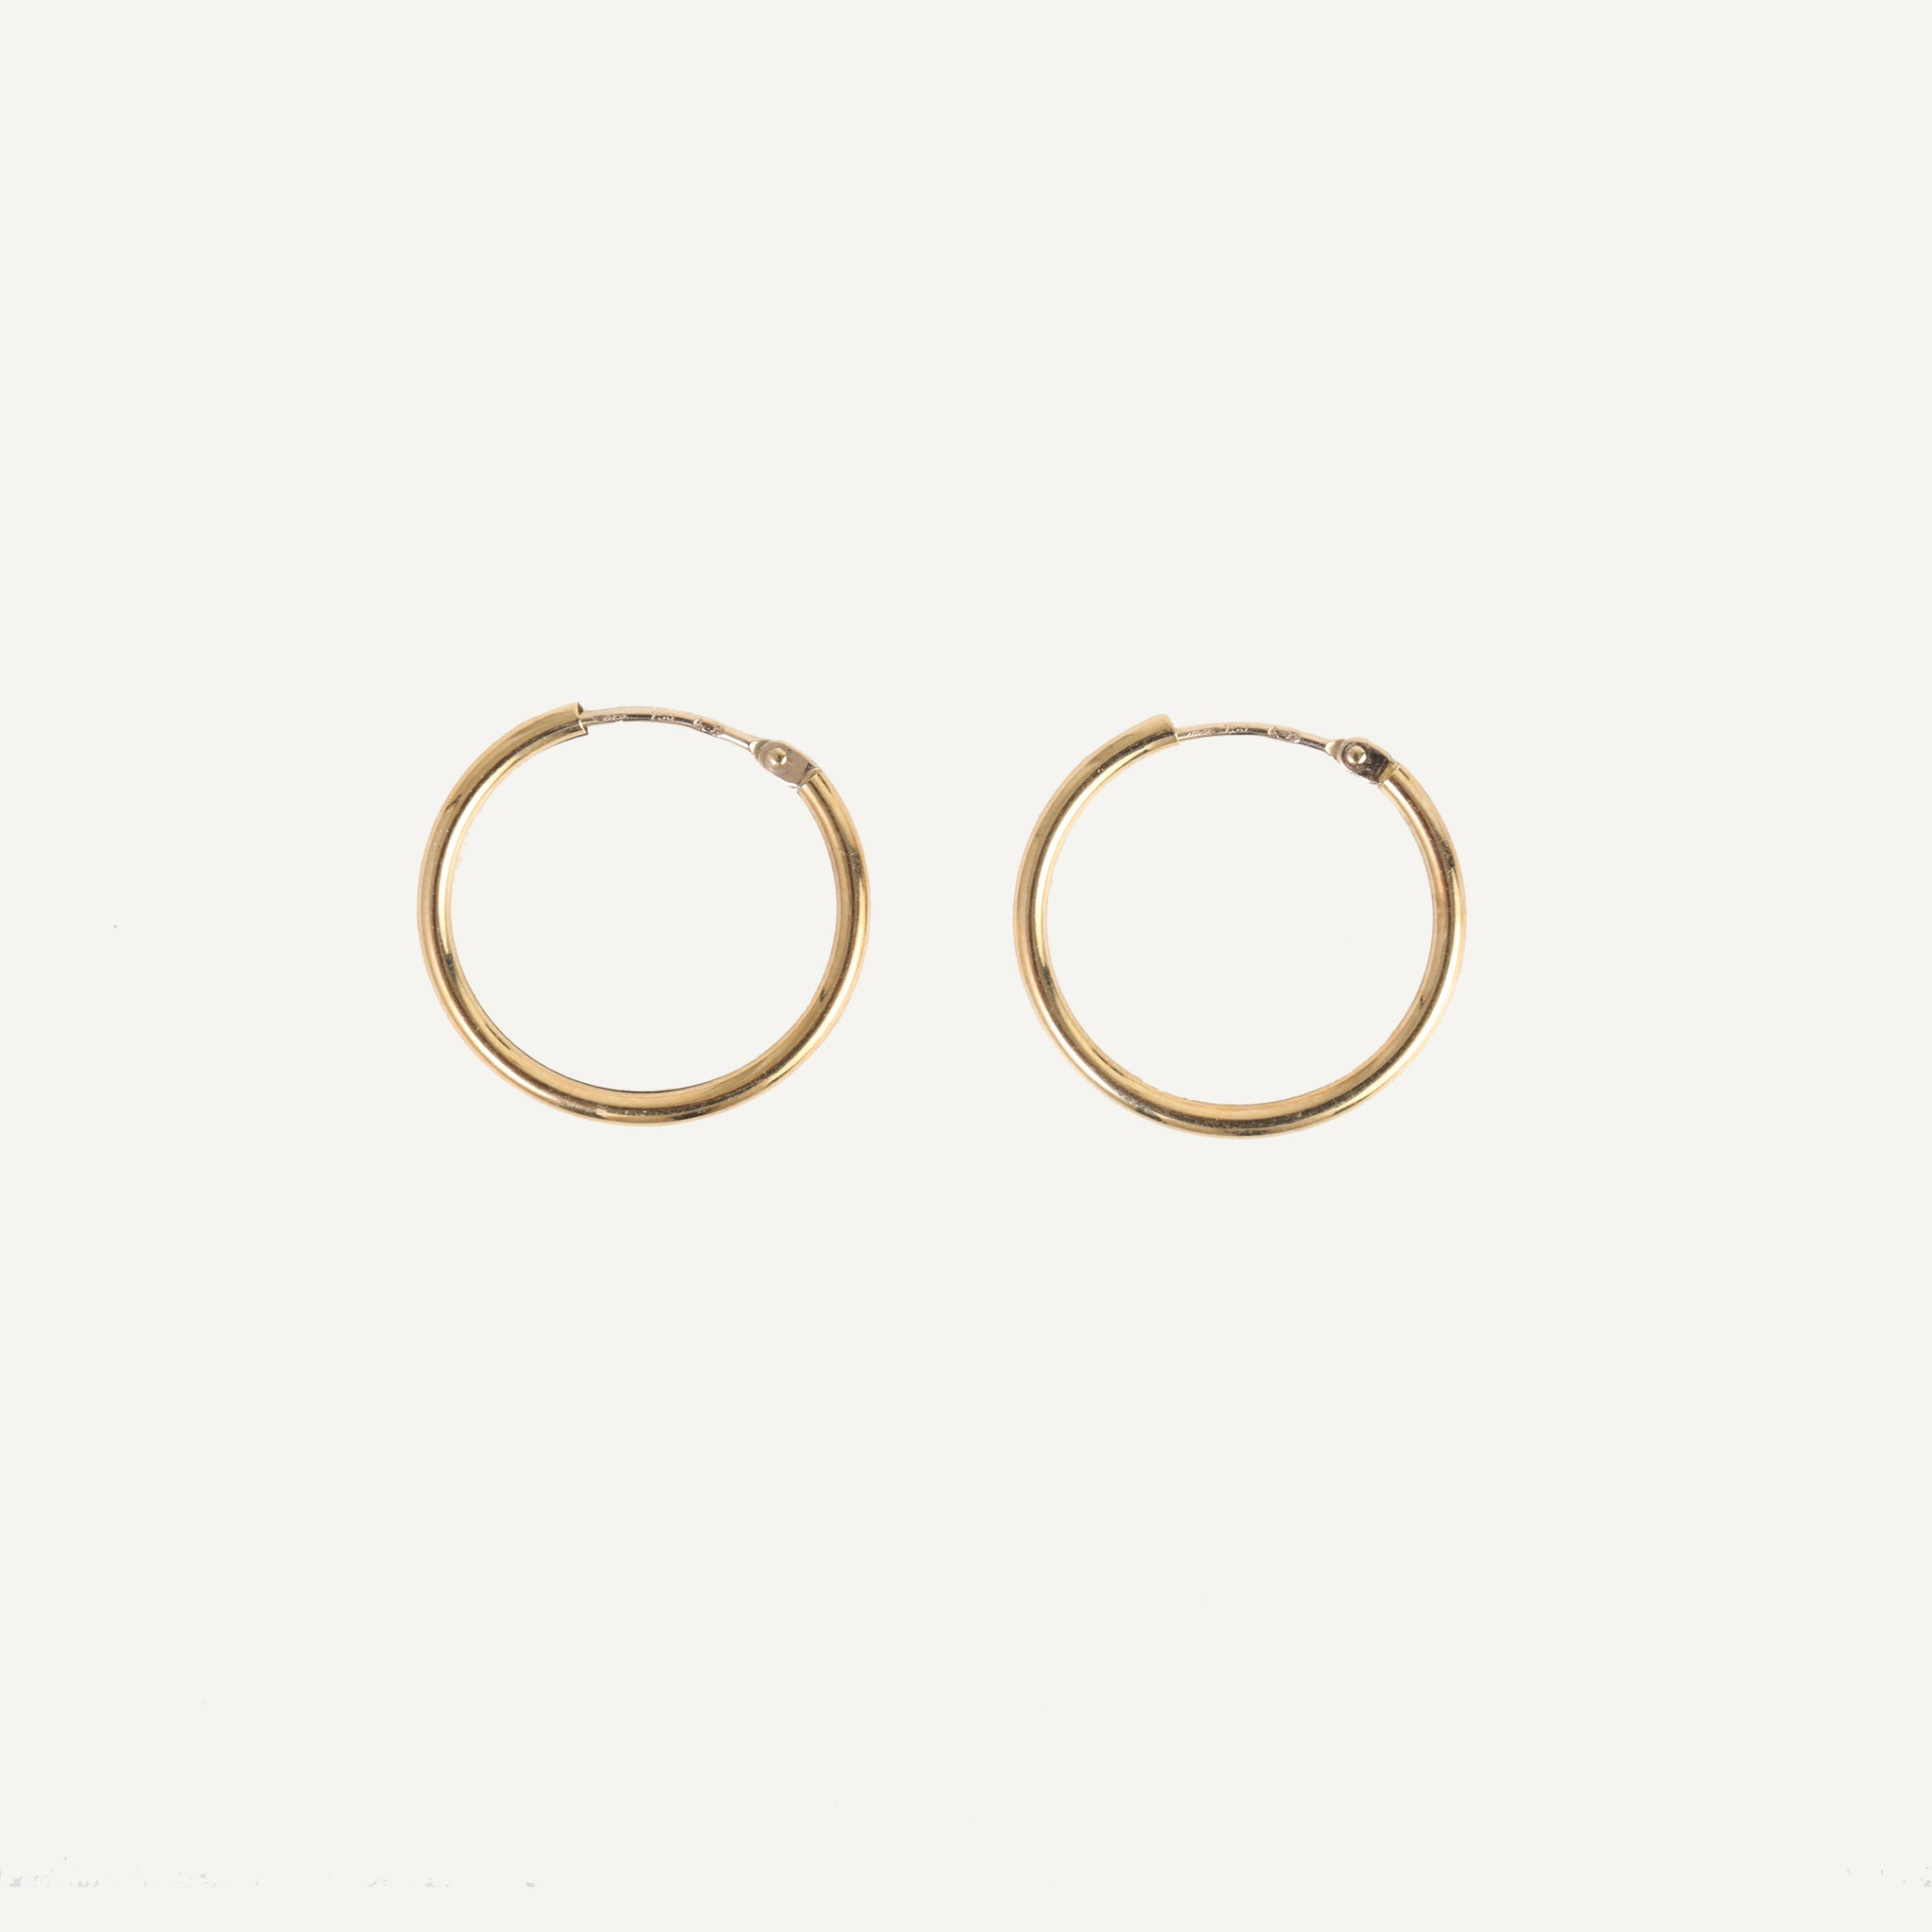 GOLD HOOP EARRINGS - LARGE